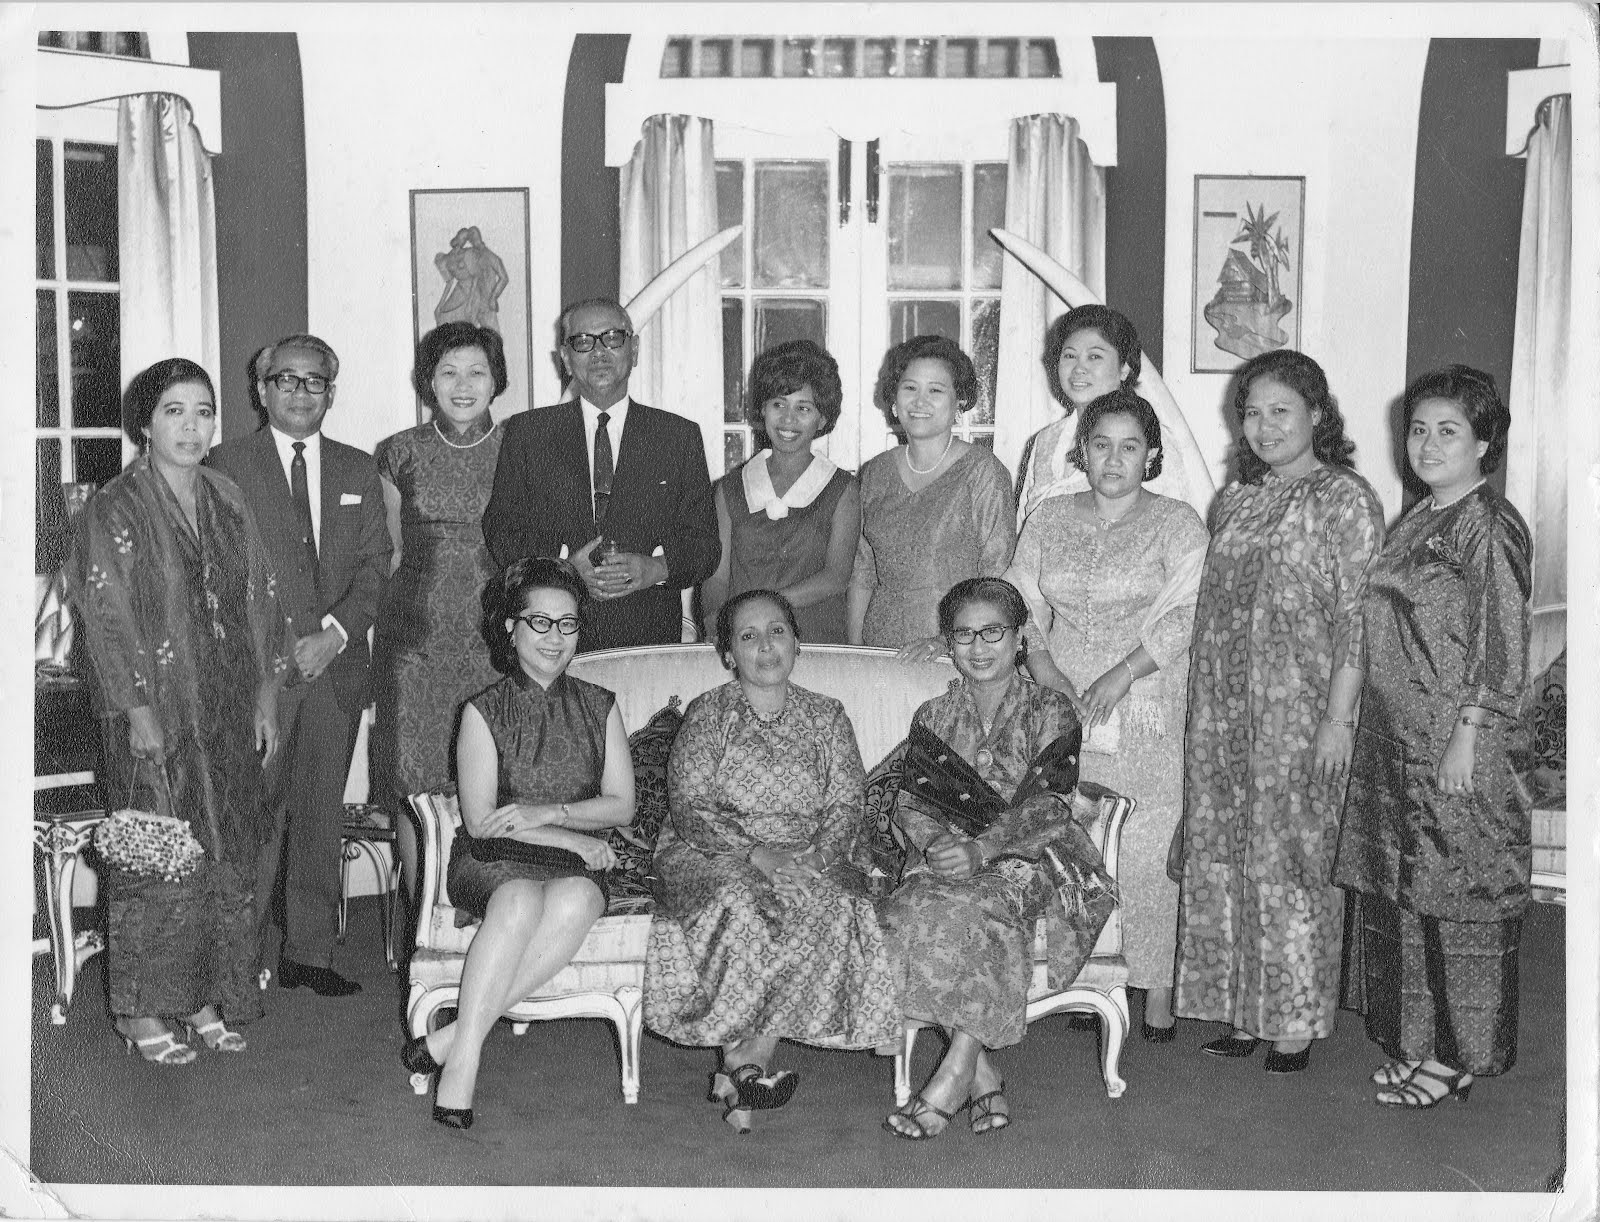 tengku abdul rahman katturai in tamil Abdul rahman,38 (as reflected in mahathir's criticisms of the tunku's   materials from the chinese or indian textile shops in preparing for the eid and  also  mahathir's anti-colonialism came to the fore in the essay on east and  west.